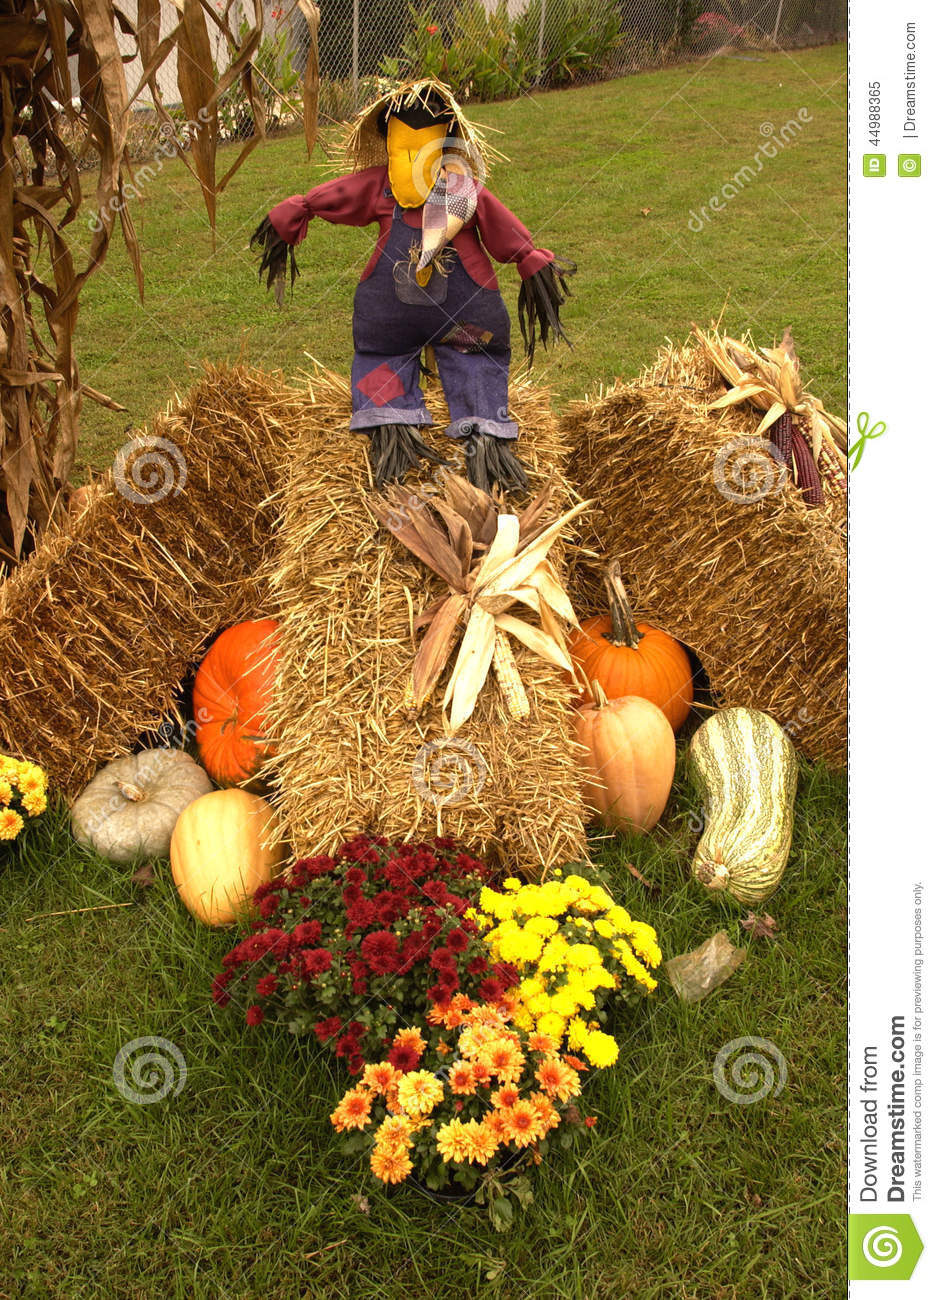 Fall Scenes Wallpaper With Pumpkins Fall Scene With Pumpkins Gourds Mums Hay And A